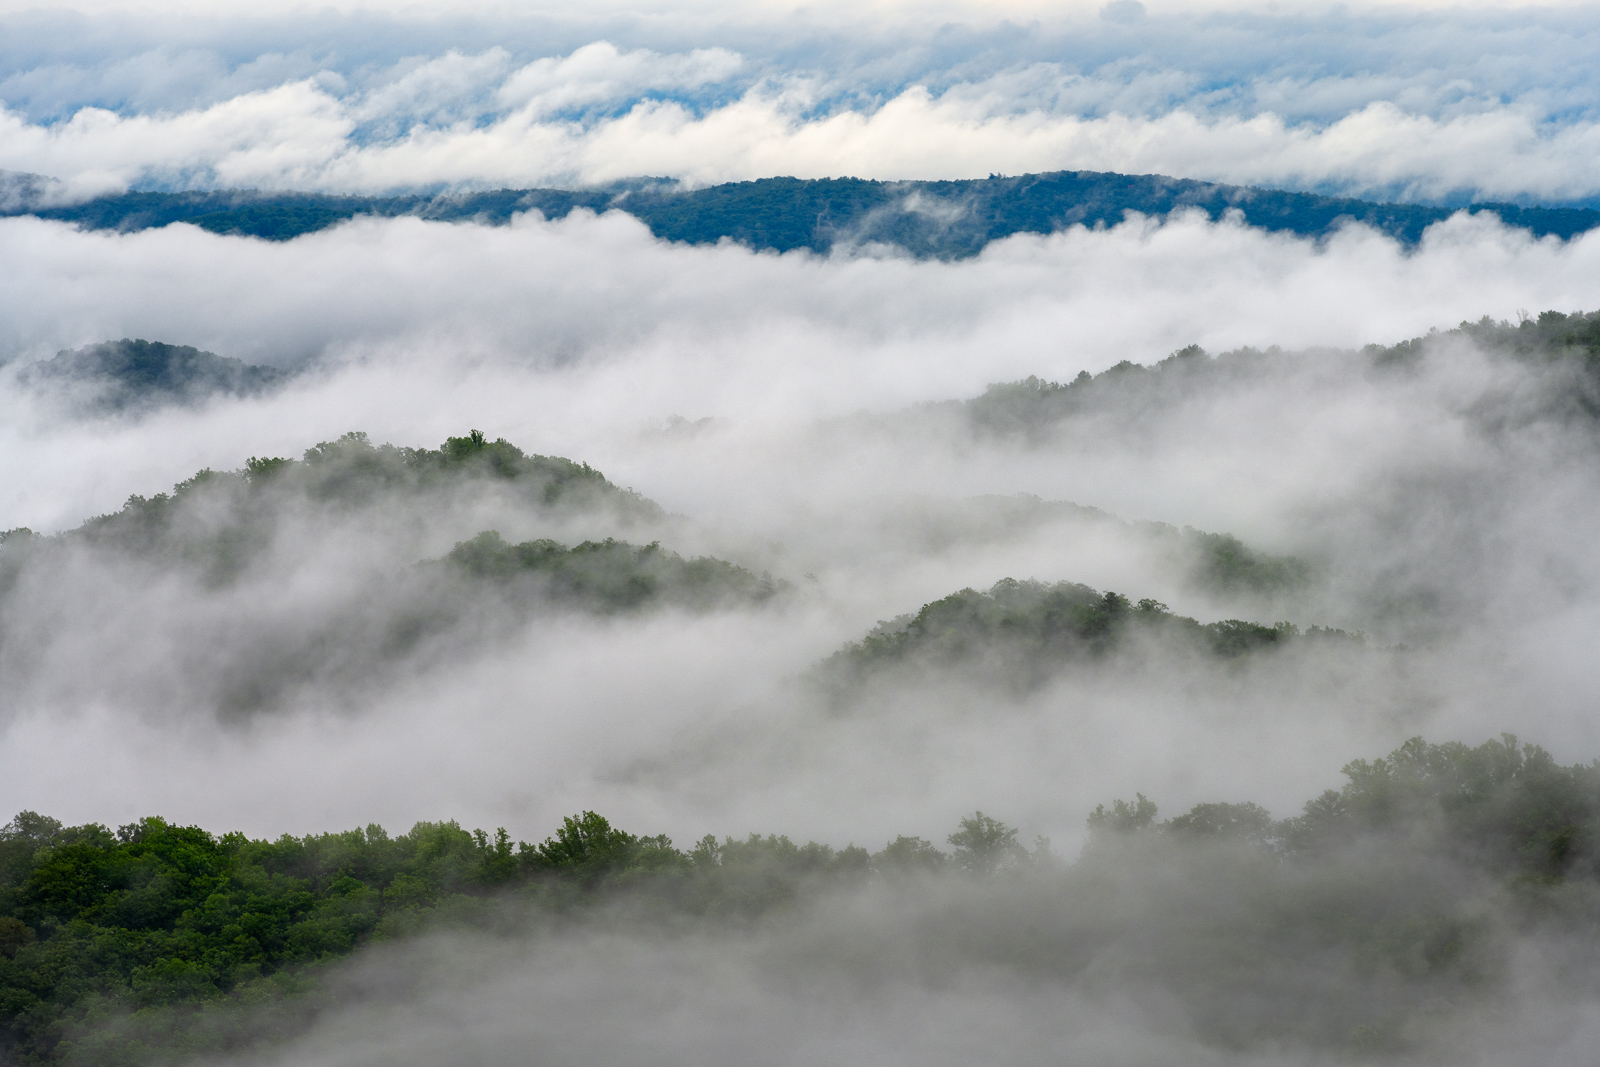 Low clouyds and fog dancing through the mountains of Shenandoah National Park, Virginia.